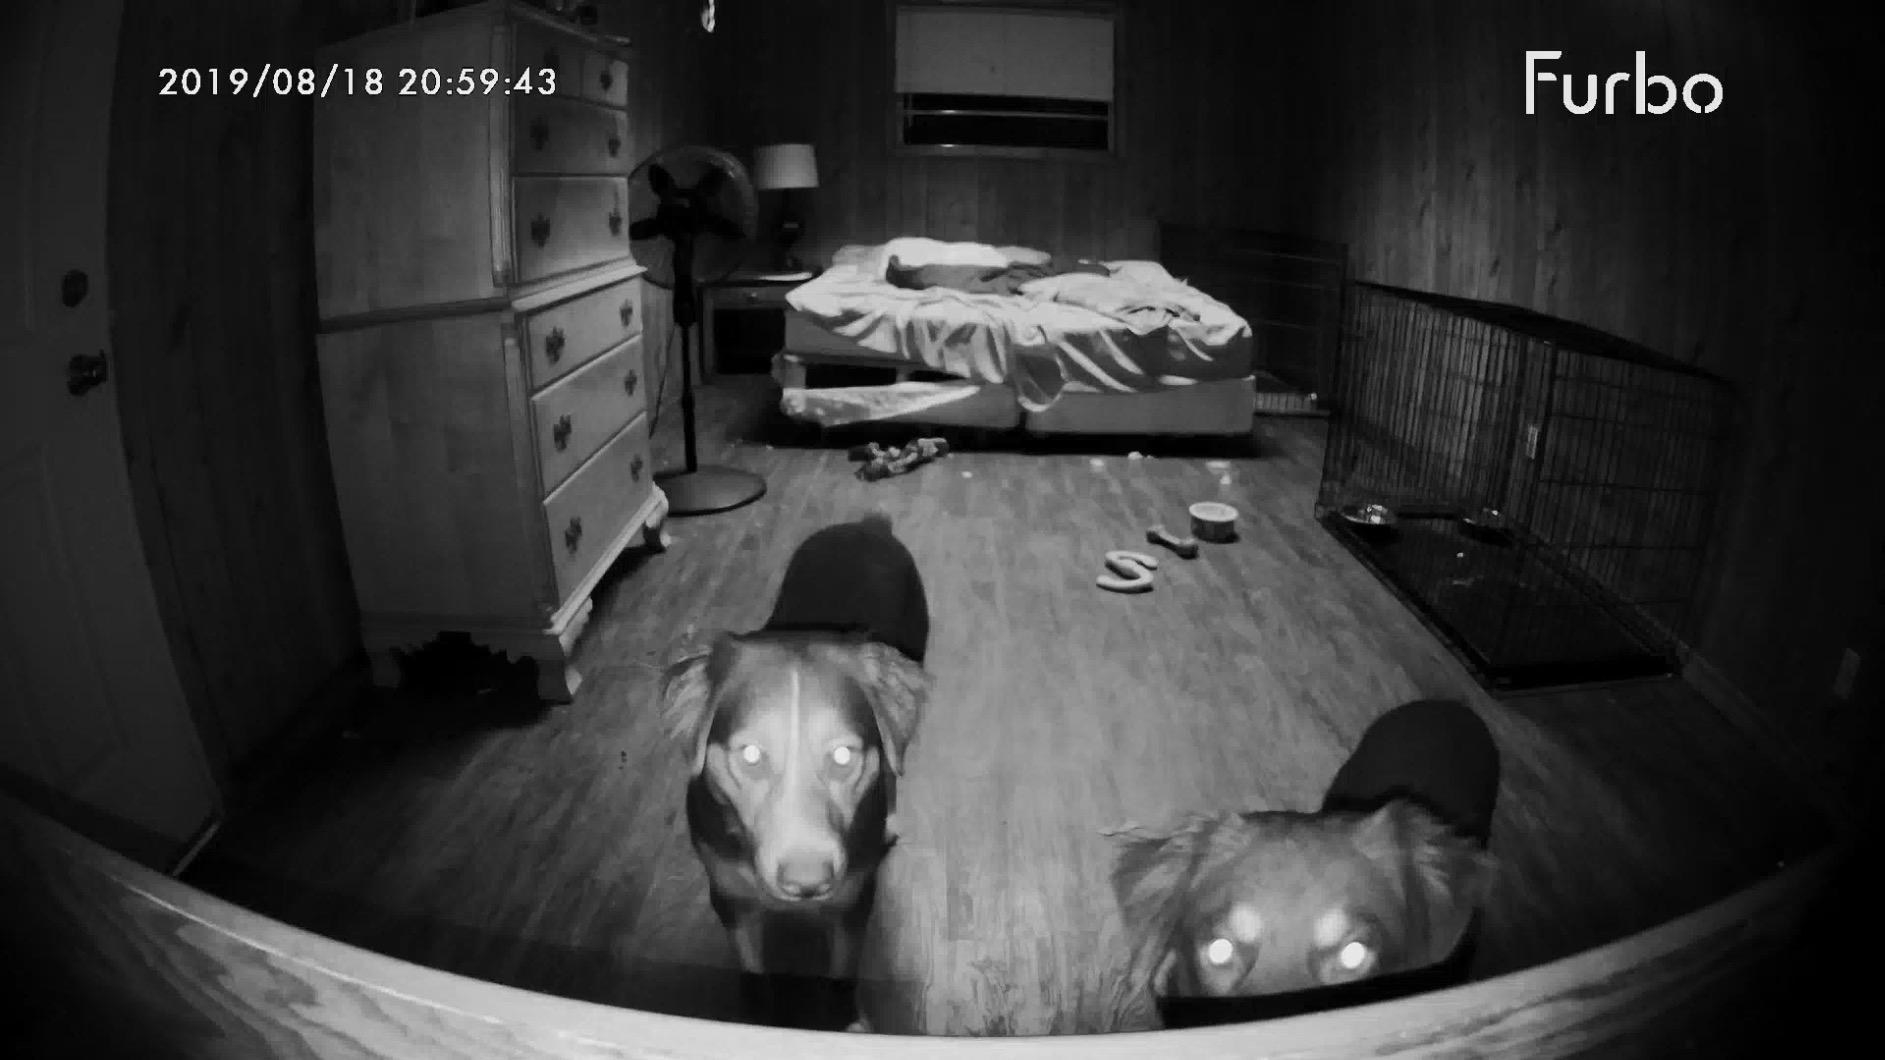 reviewer photo showing their two dogs staring into the Furbo camera at night